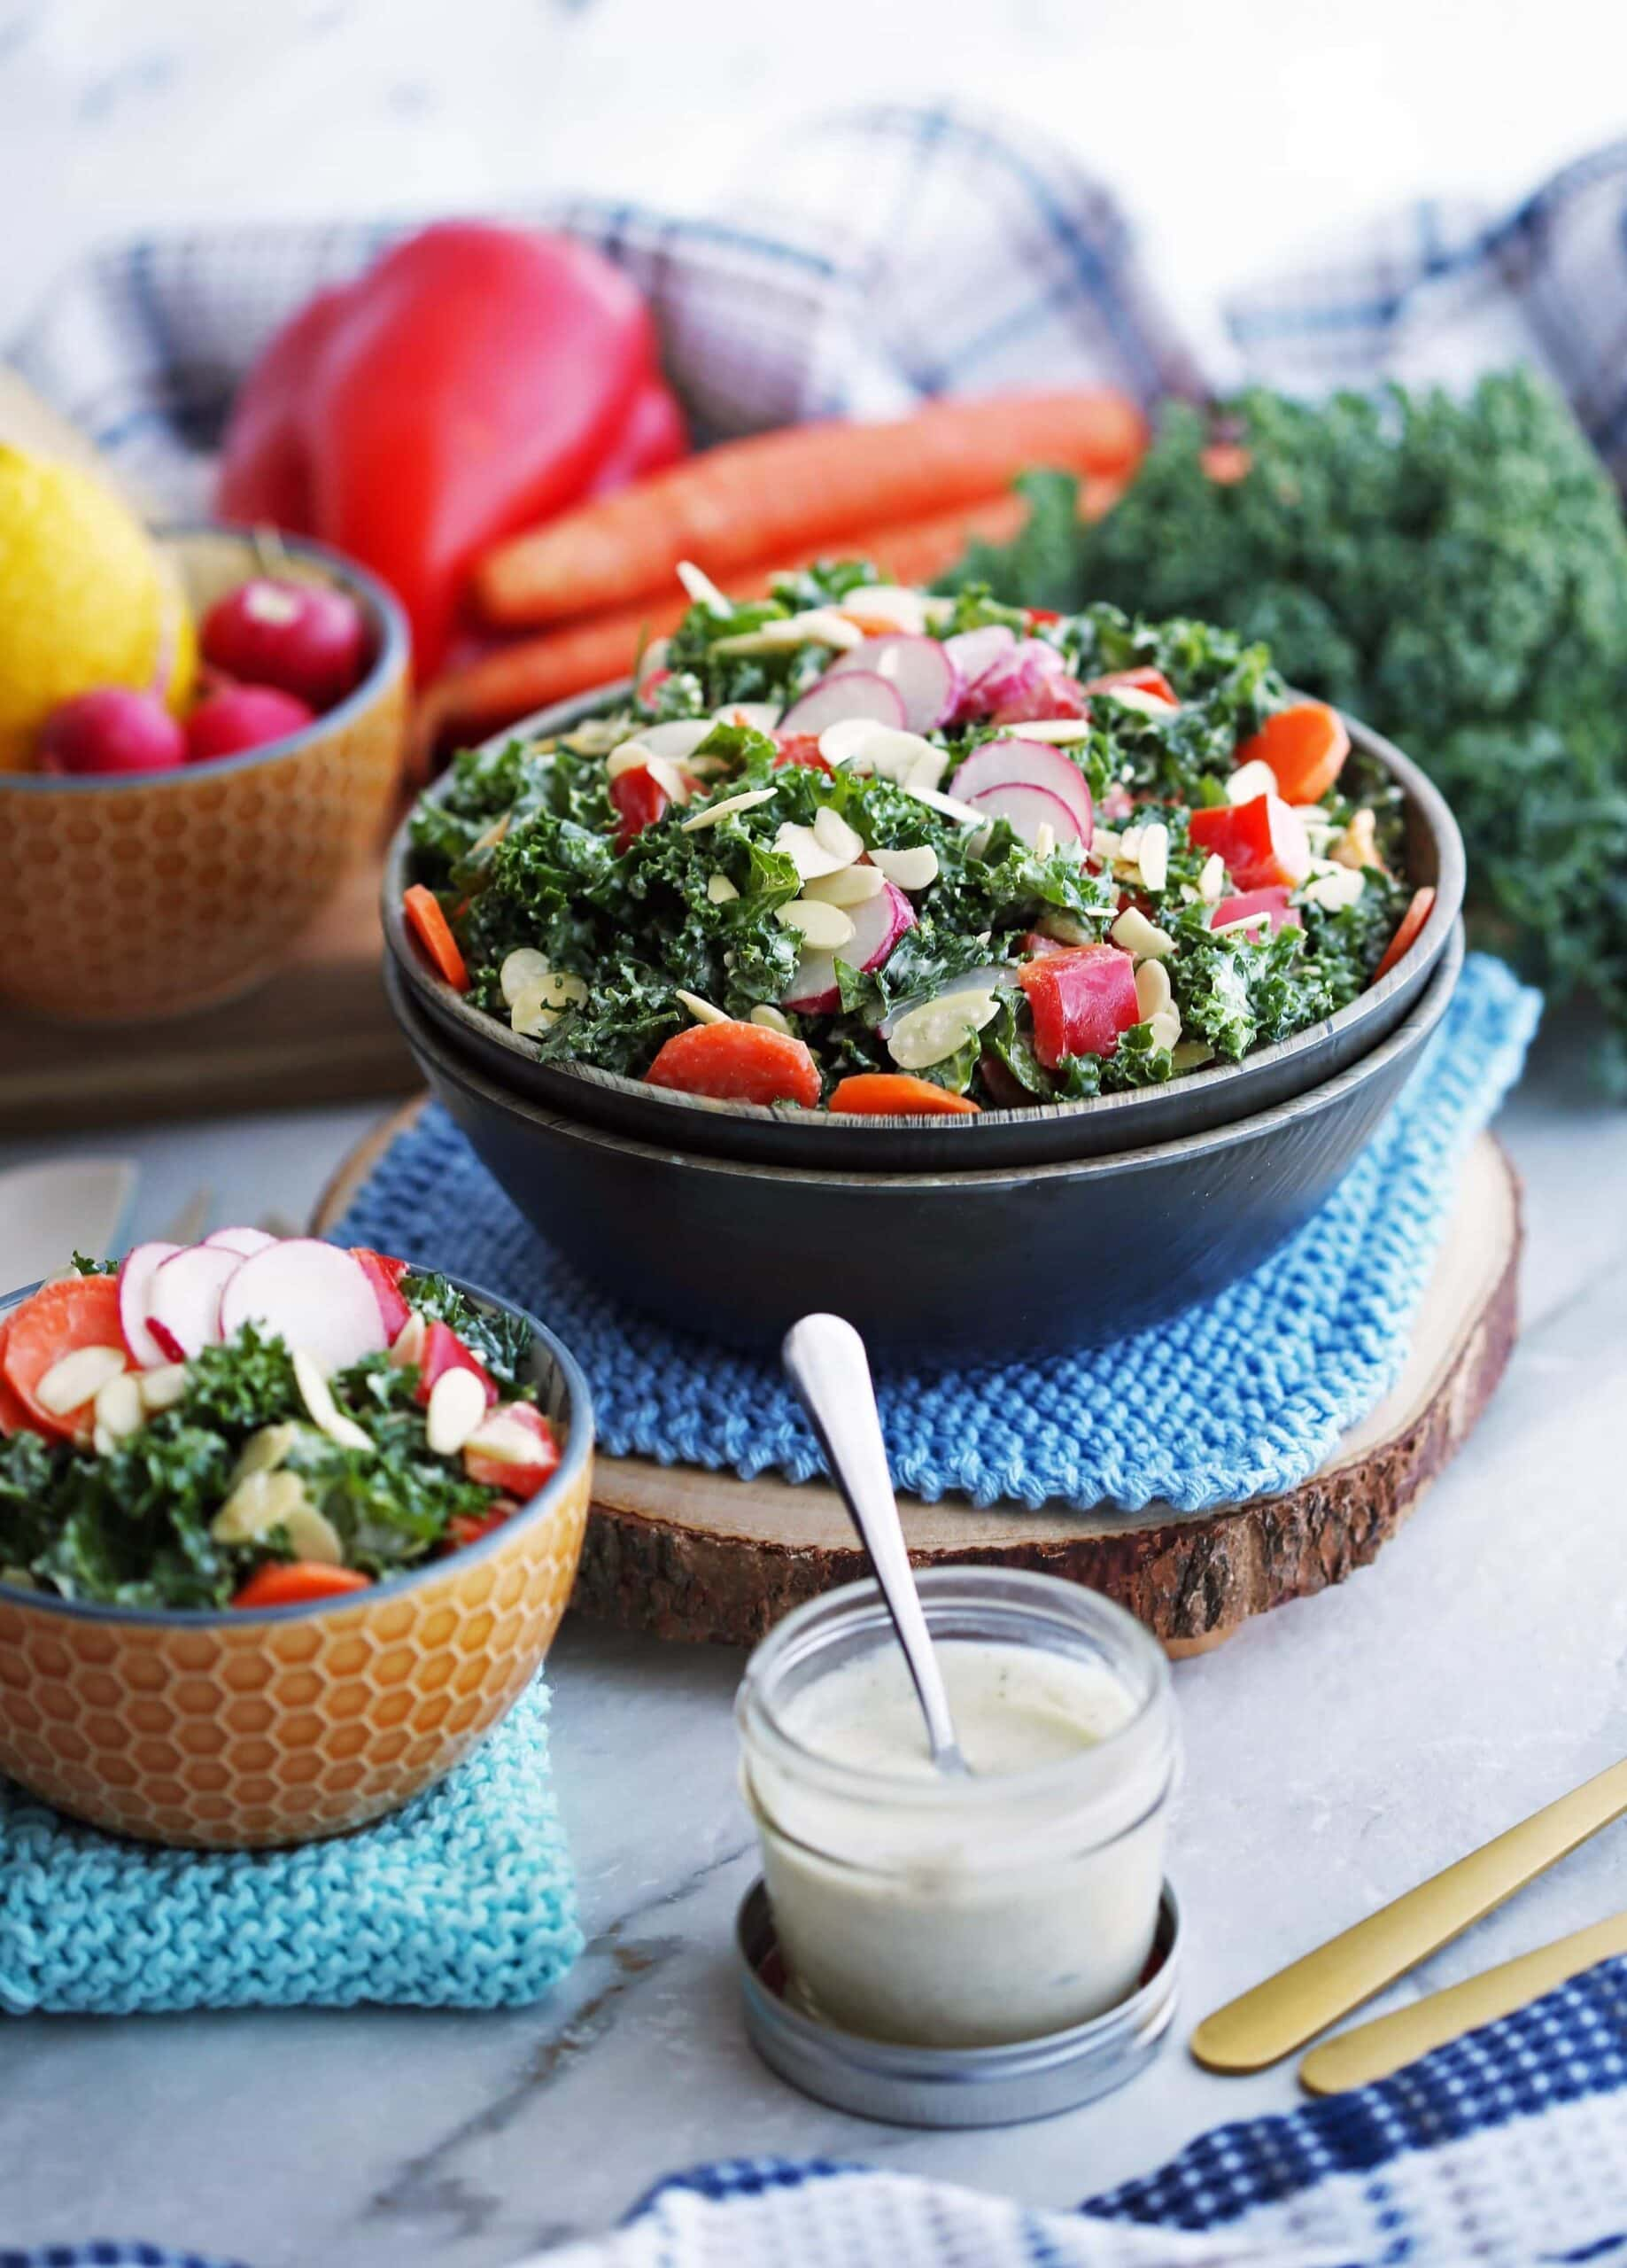 Crunchy Kale Salad with Creamy Parmesan Yogurt Dressing